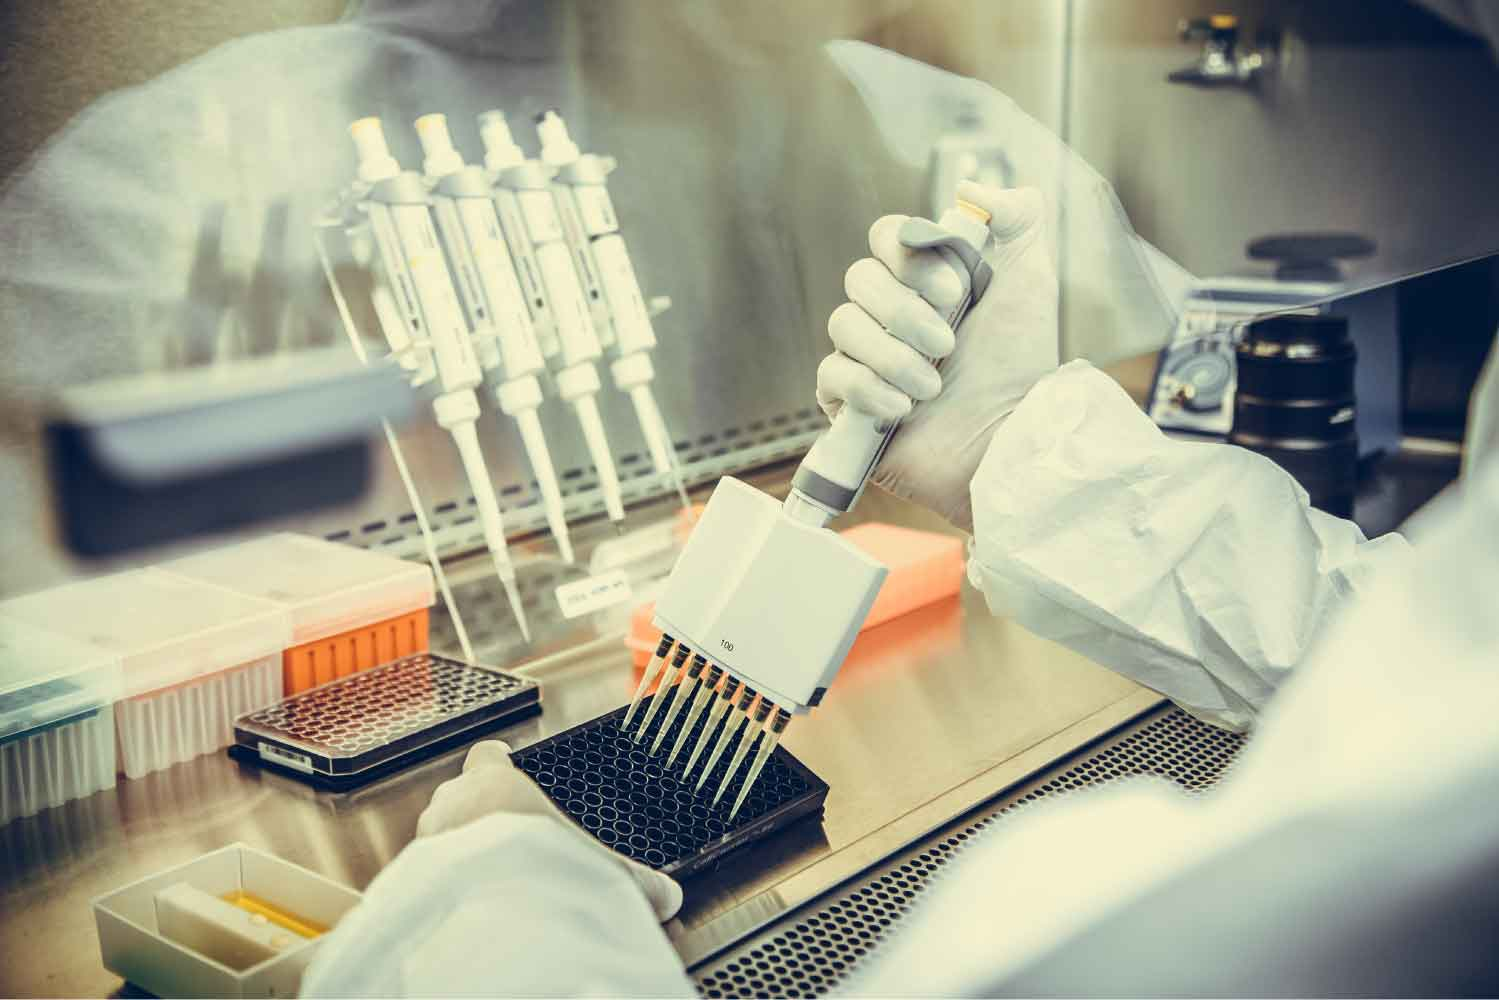 biotech in life Learn about working at eastern biotech & life sciences join linkedin today for free see who you know at eastern biotech & life sciences, leverage your professional network, and get hired.